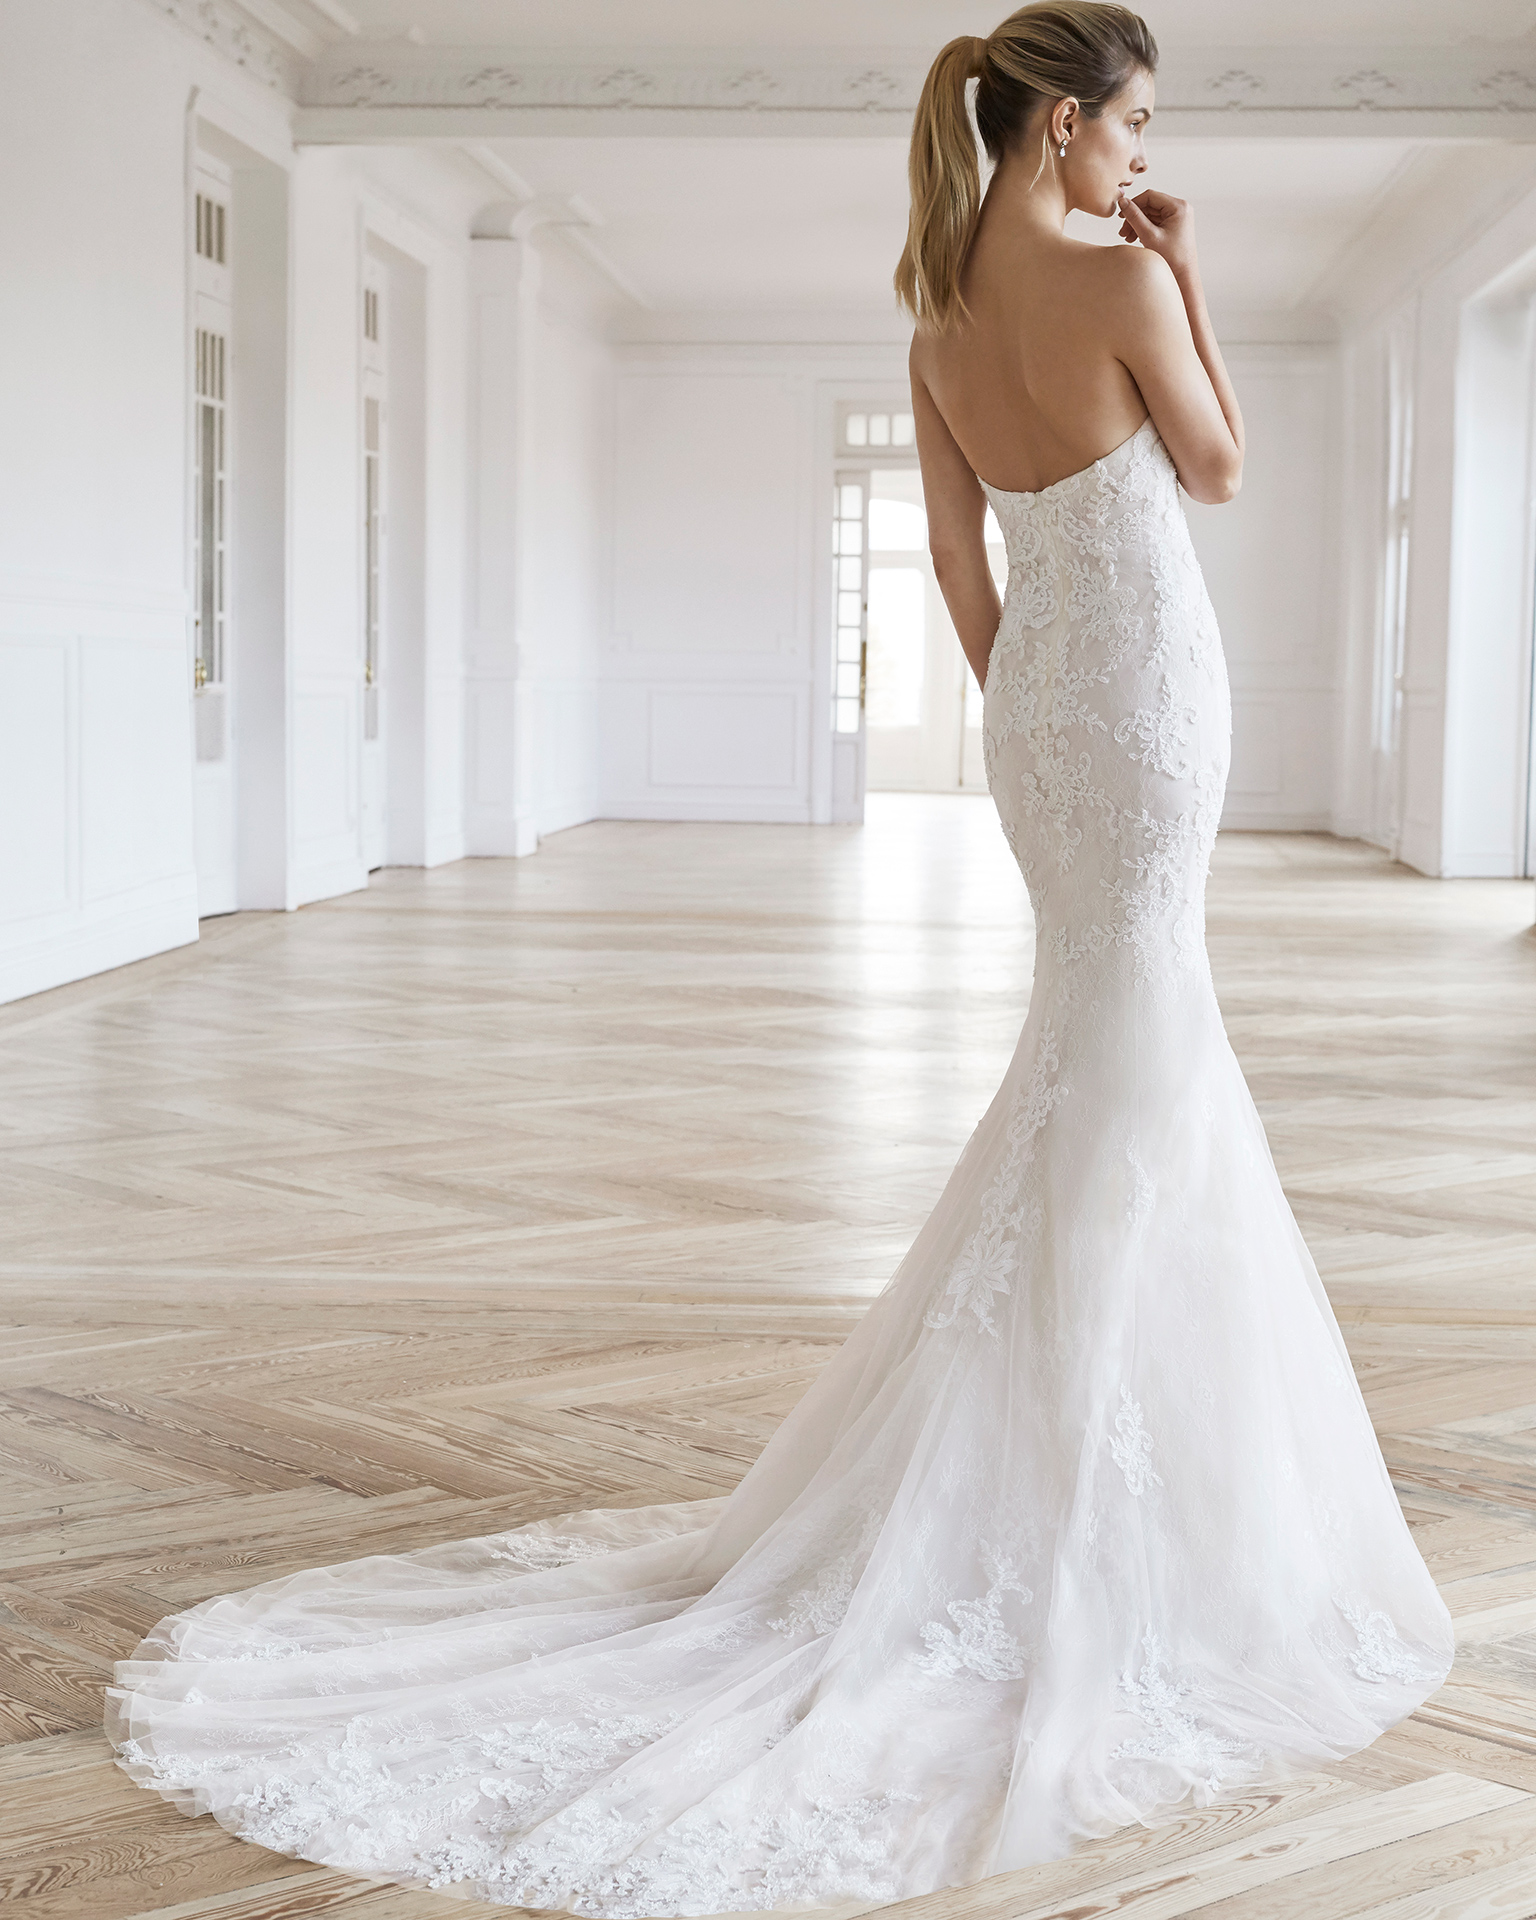 Mermaid-style wedding dress in beaded lace. Strapless neckline and beaded lace and tulle cape. Available in natural/nude and natural. 2019 AIRE BARCELONA Collection.